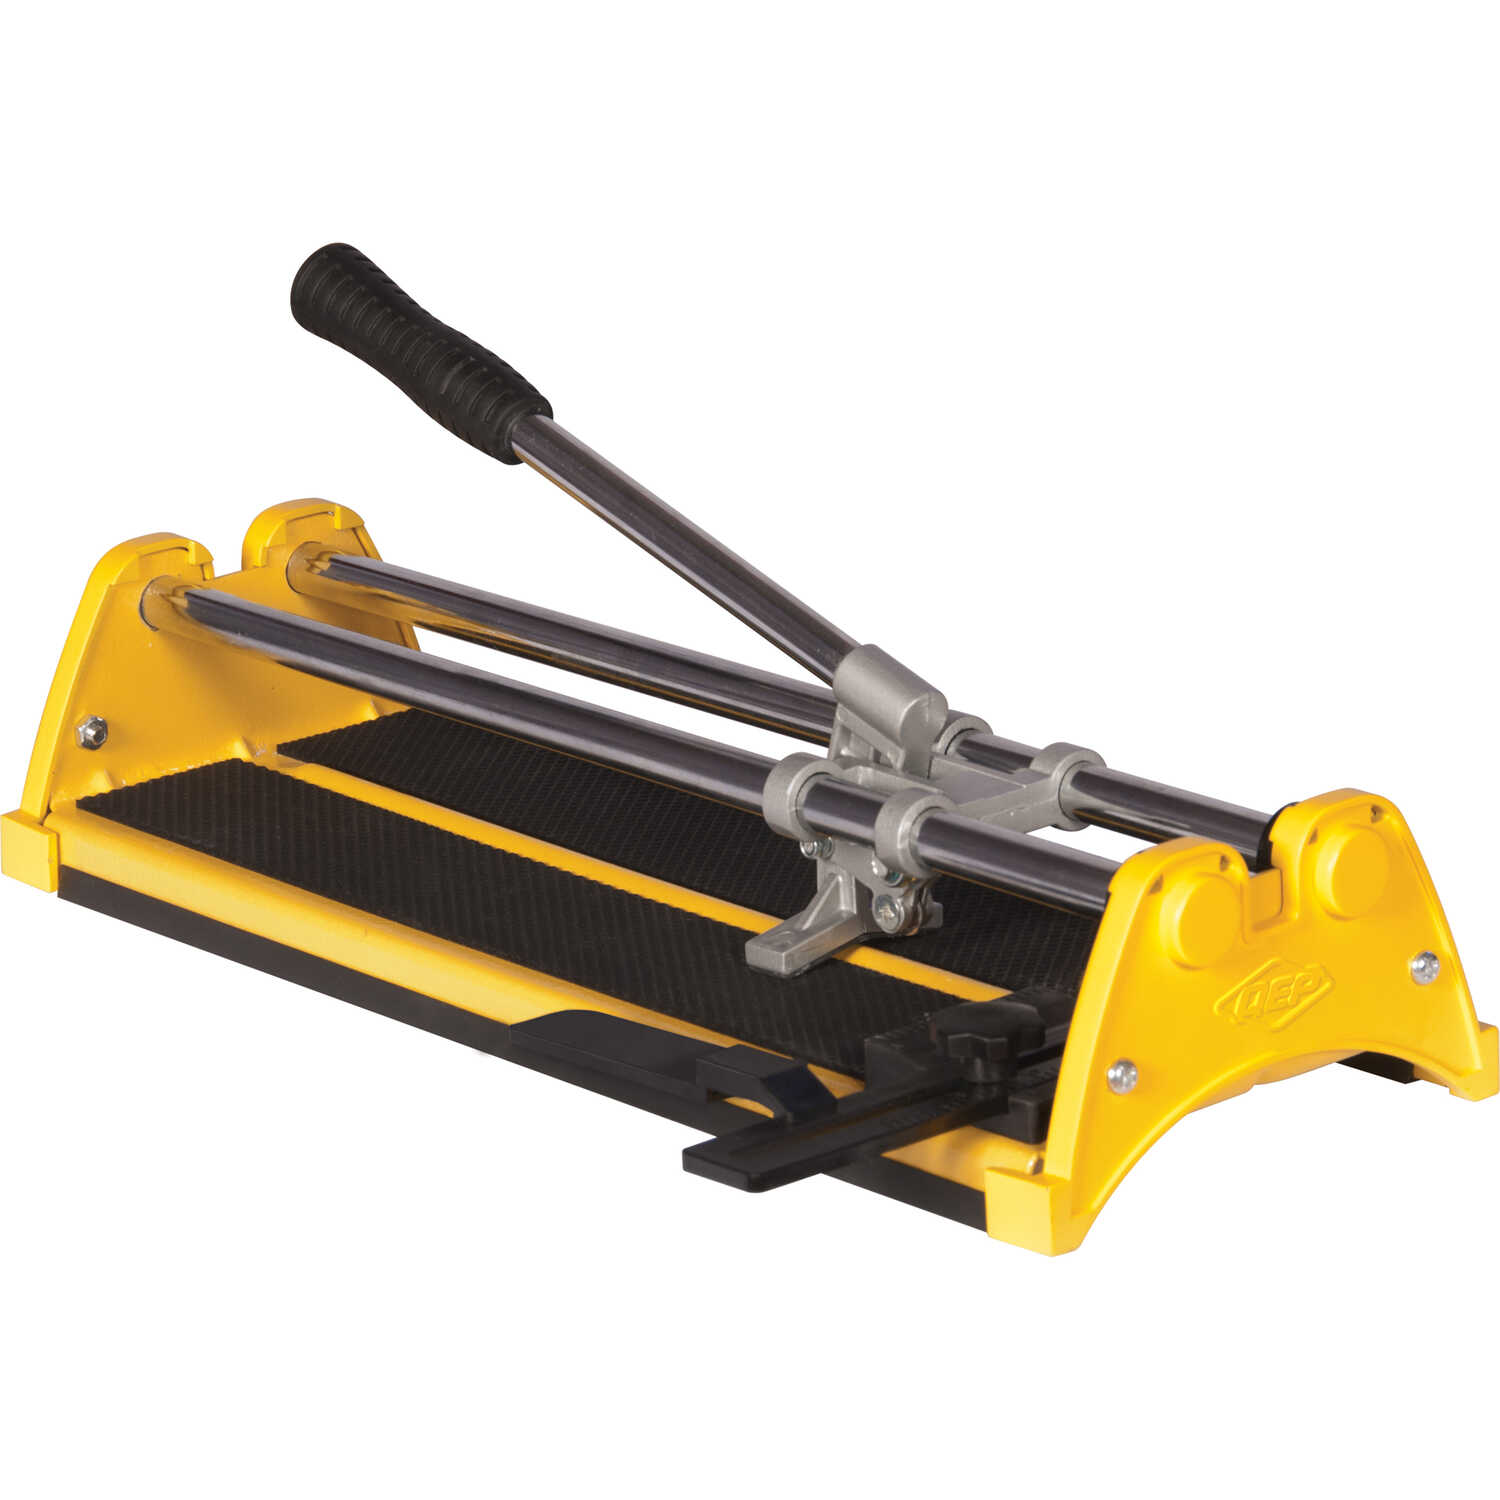 QEP  6.1 in. W x 19 in. L x 4.5 in. H Steel  Tile Cutter  1 pk